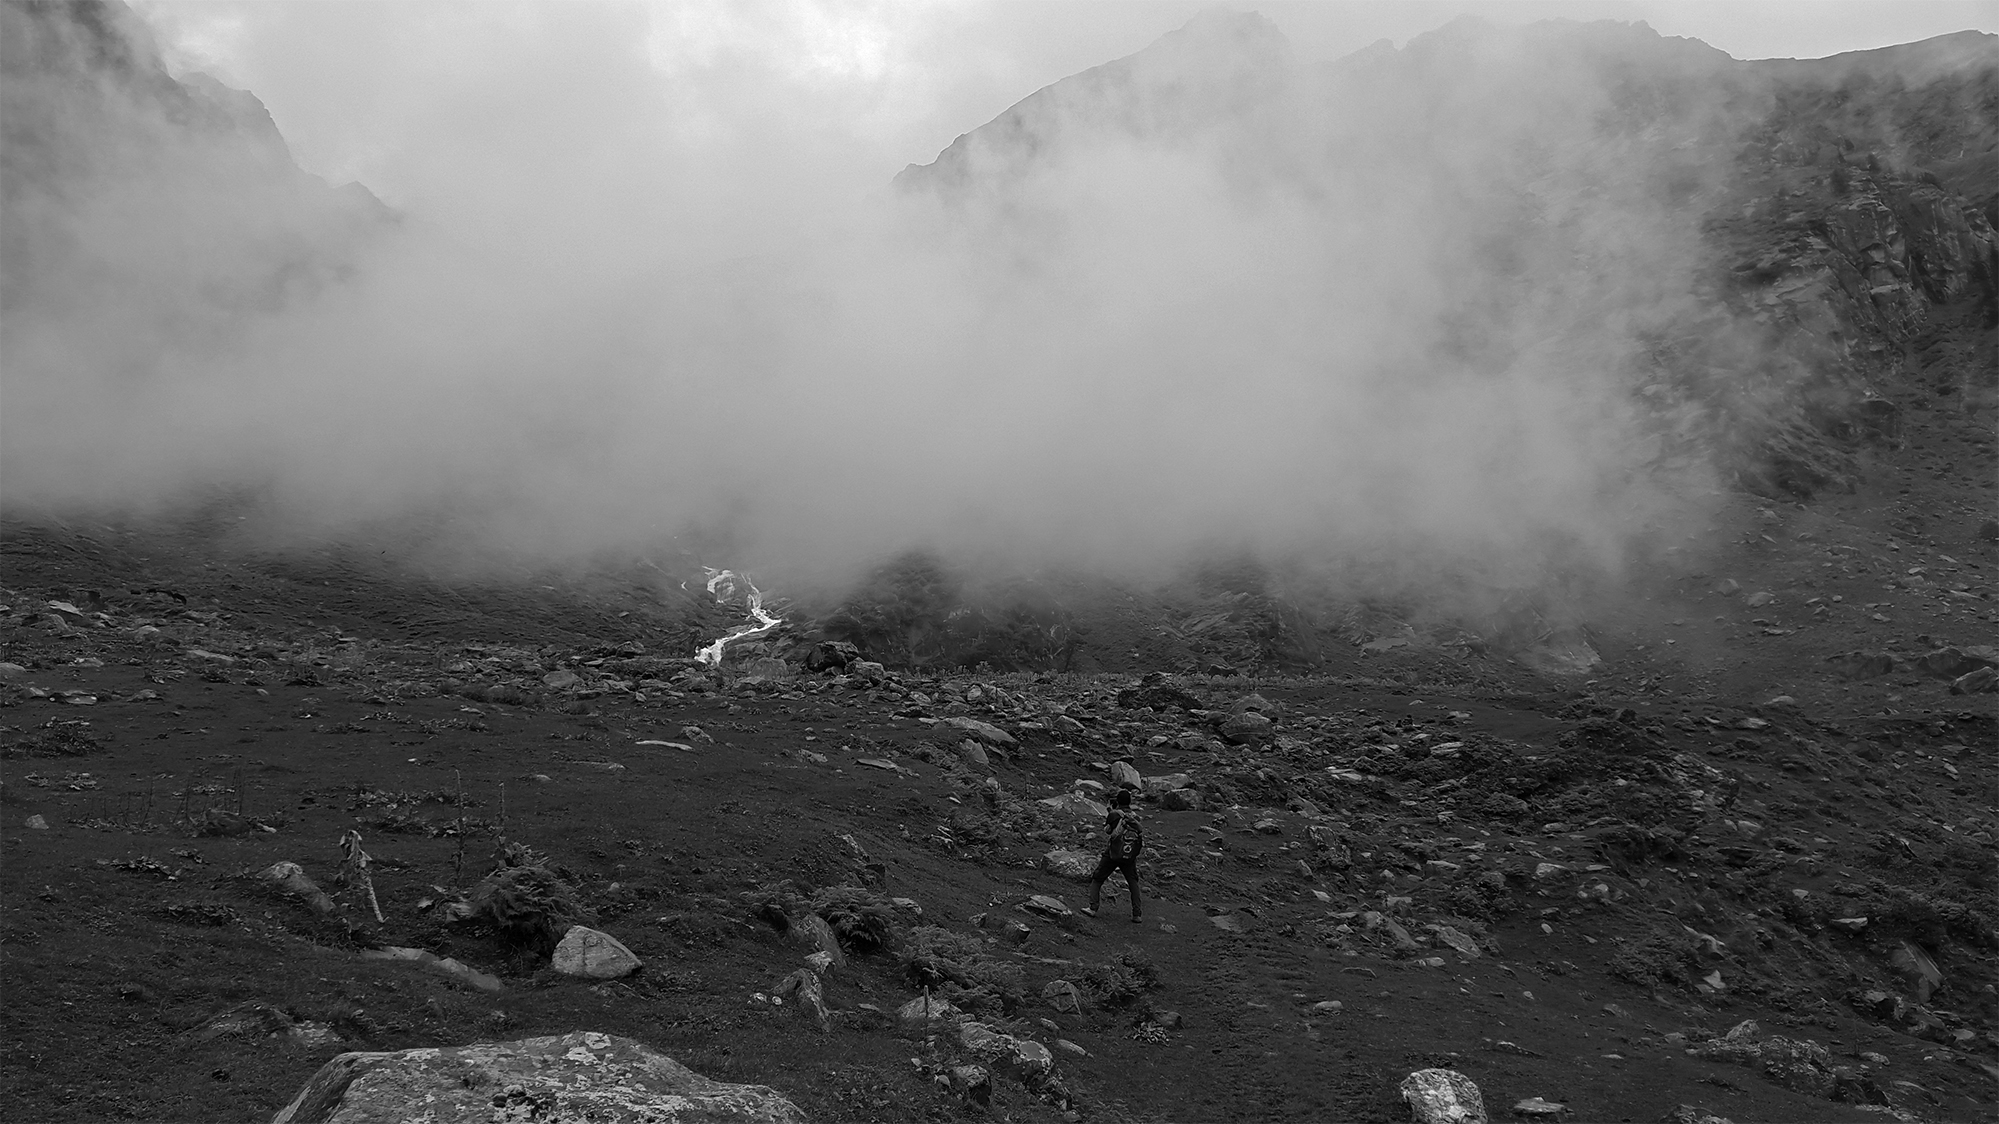 Visibility is down because of cloud. But his vision is clear to reach hampta pass (14,000 feet) , Himalaya.